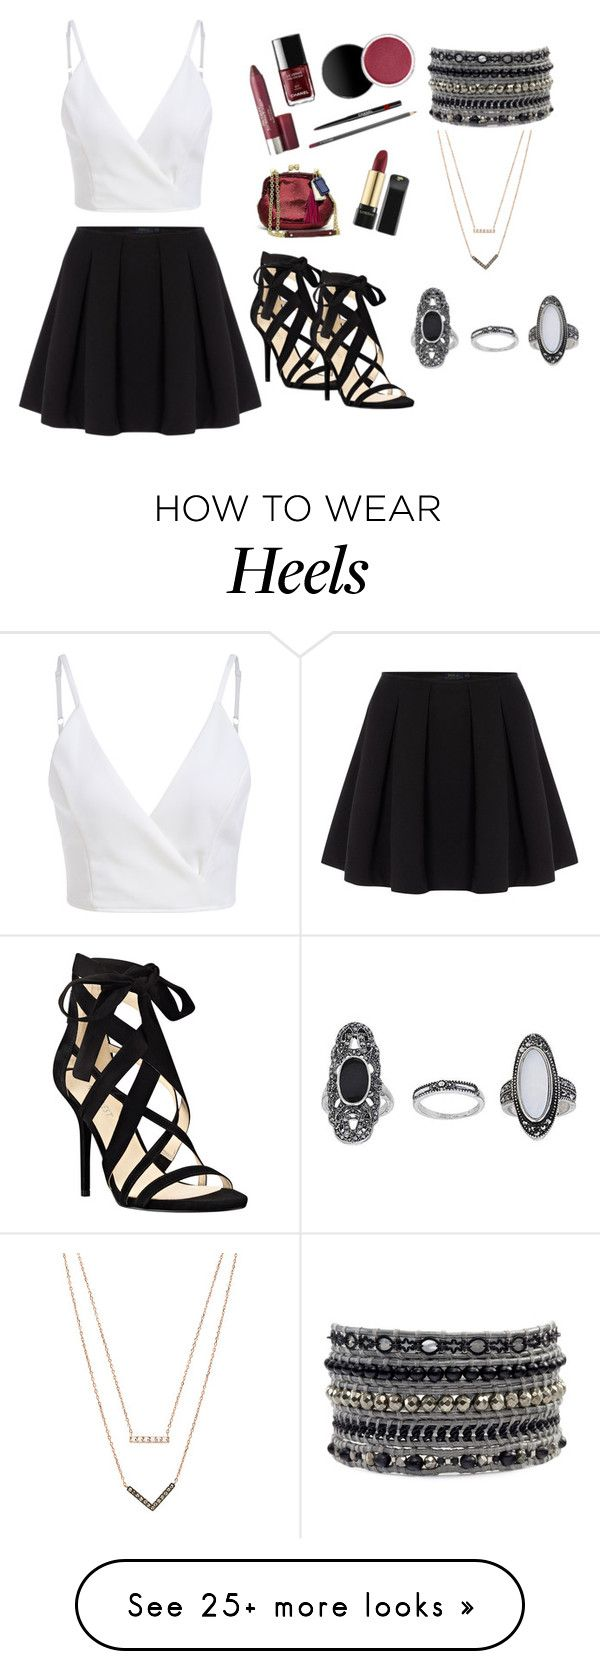 """""""Strappy Heels"""" by aishaamin25 on Polyvore featuring Polo Ralph Lauren, Nine West, Michael Kors and Topshop"""